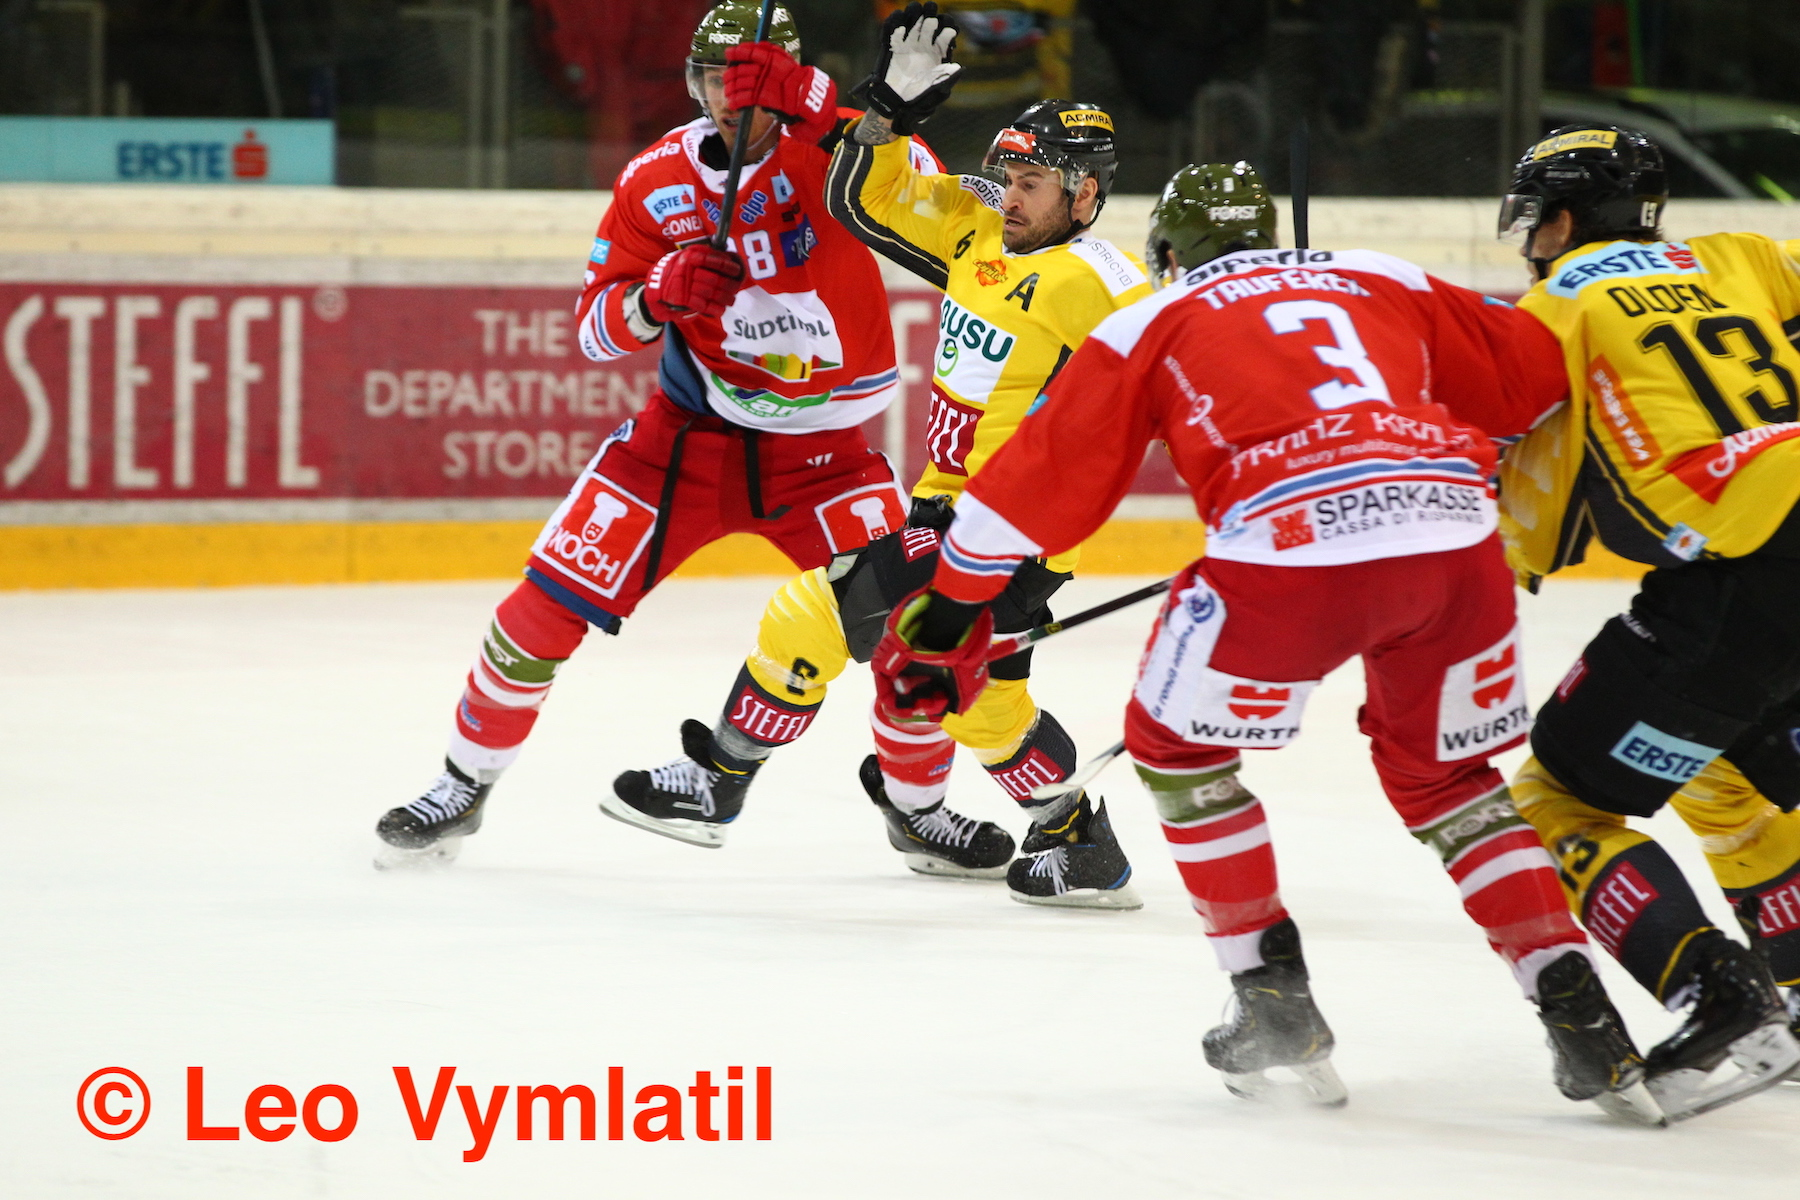 PH VIENNACAPITALS q4d6es